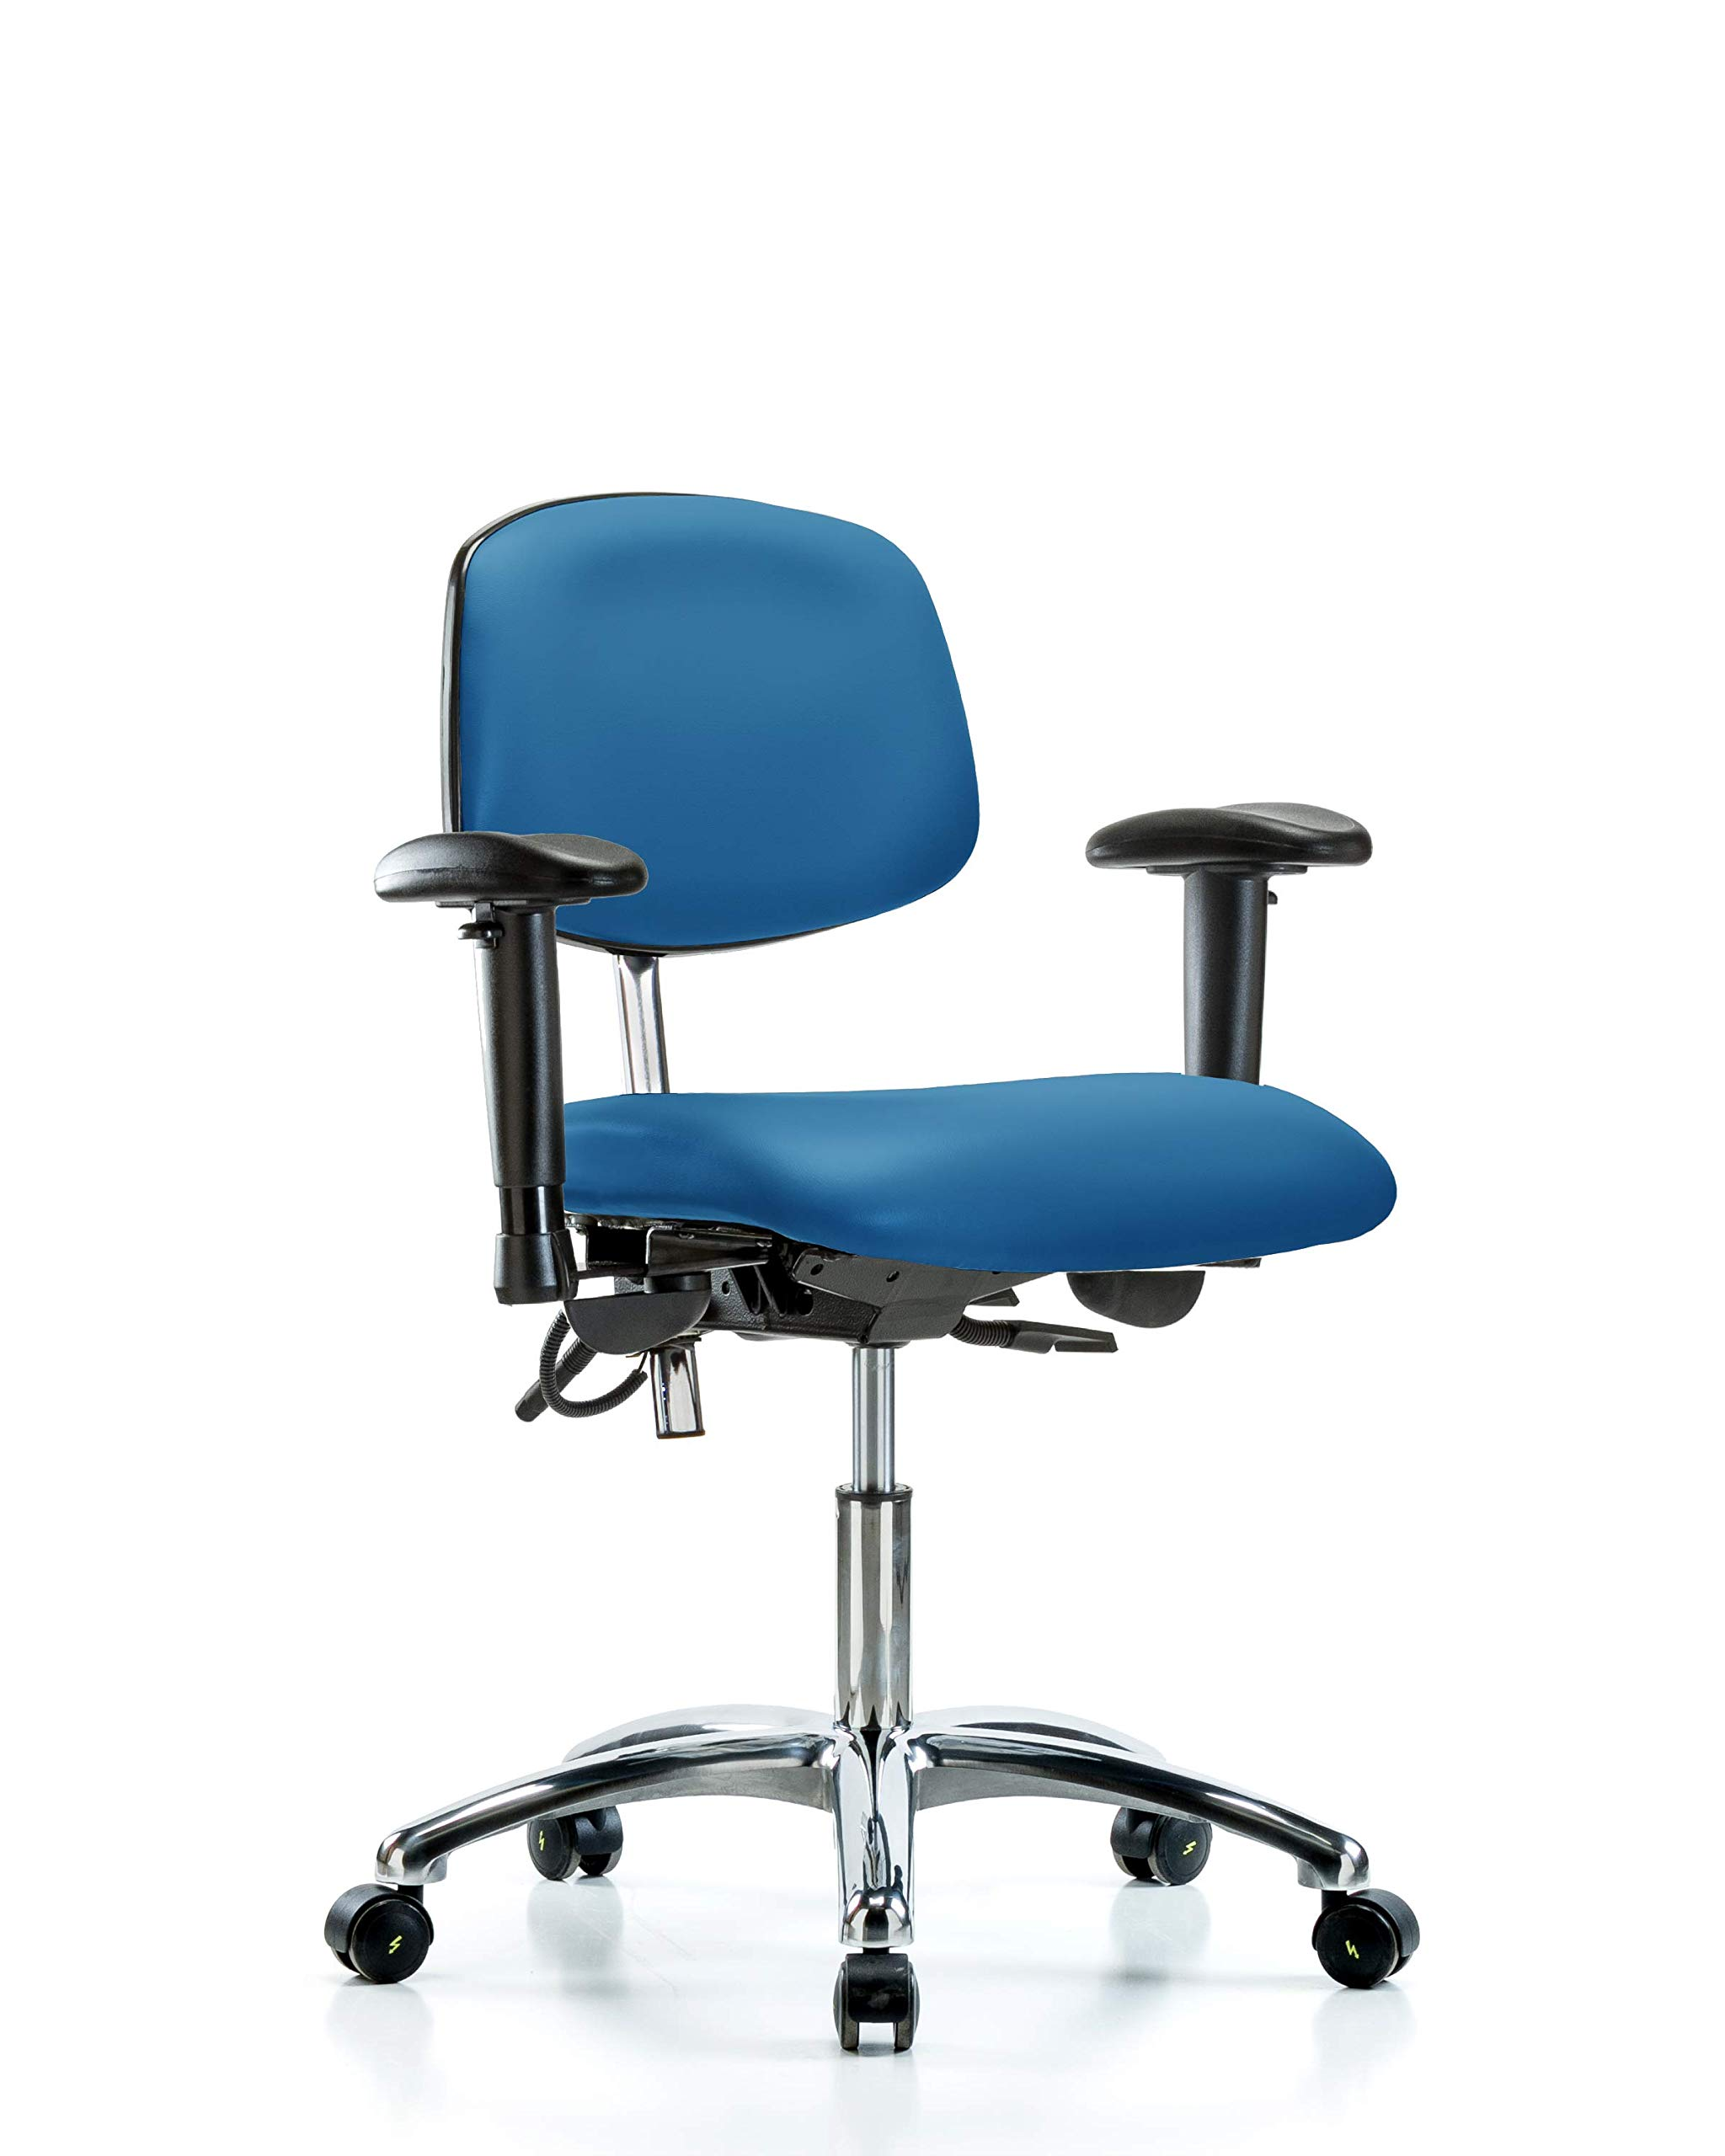 LabTech Seating LT43511 Class 100 Clean Room/ESD Vinyl Desk Height Chair Chrome Base, Tilt, Arms, ESD Casters Blue by LabTech Seating